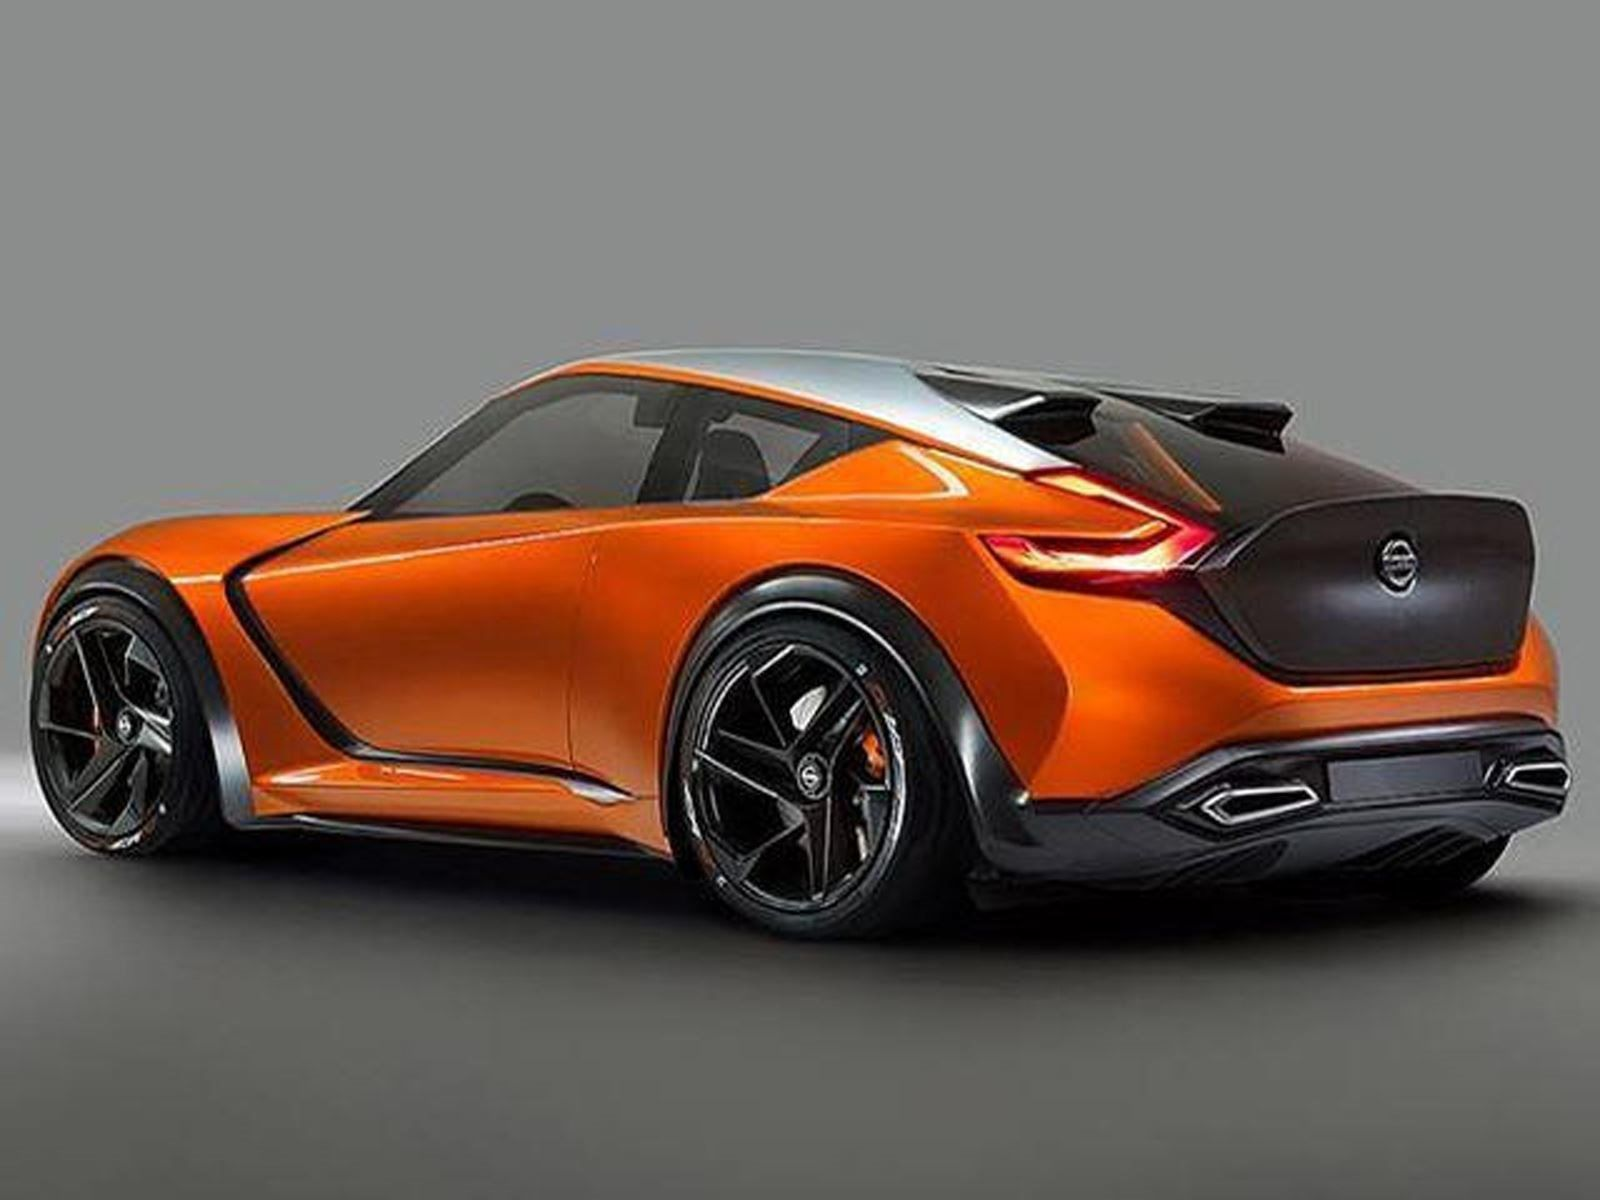 The 2019 Nissan 400z Will Have Twin Turbo V6 With Up To 476 Hp And Yes A New Nismo Is Also Planned Nissan Z Cars Nissan Z Nissan